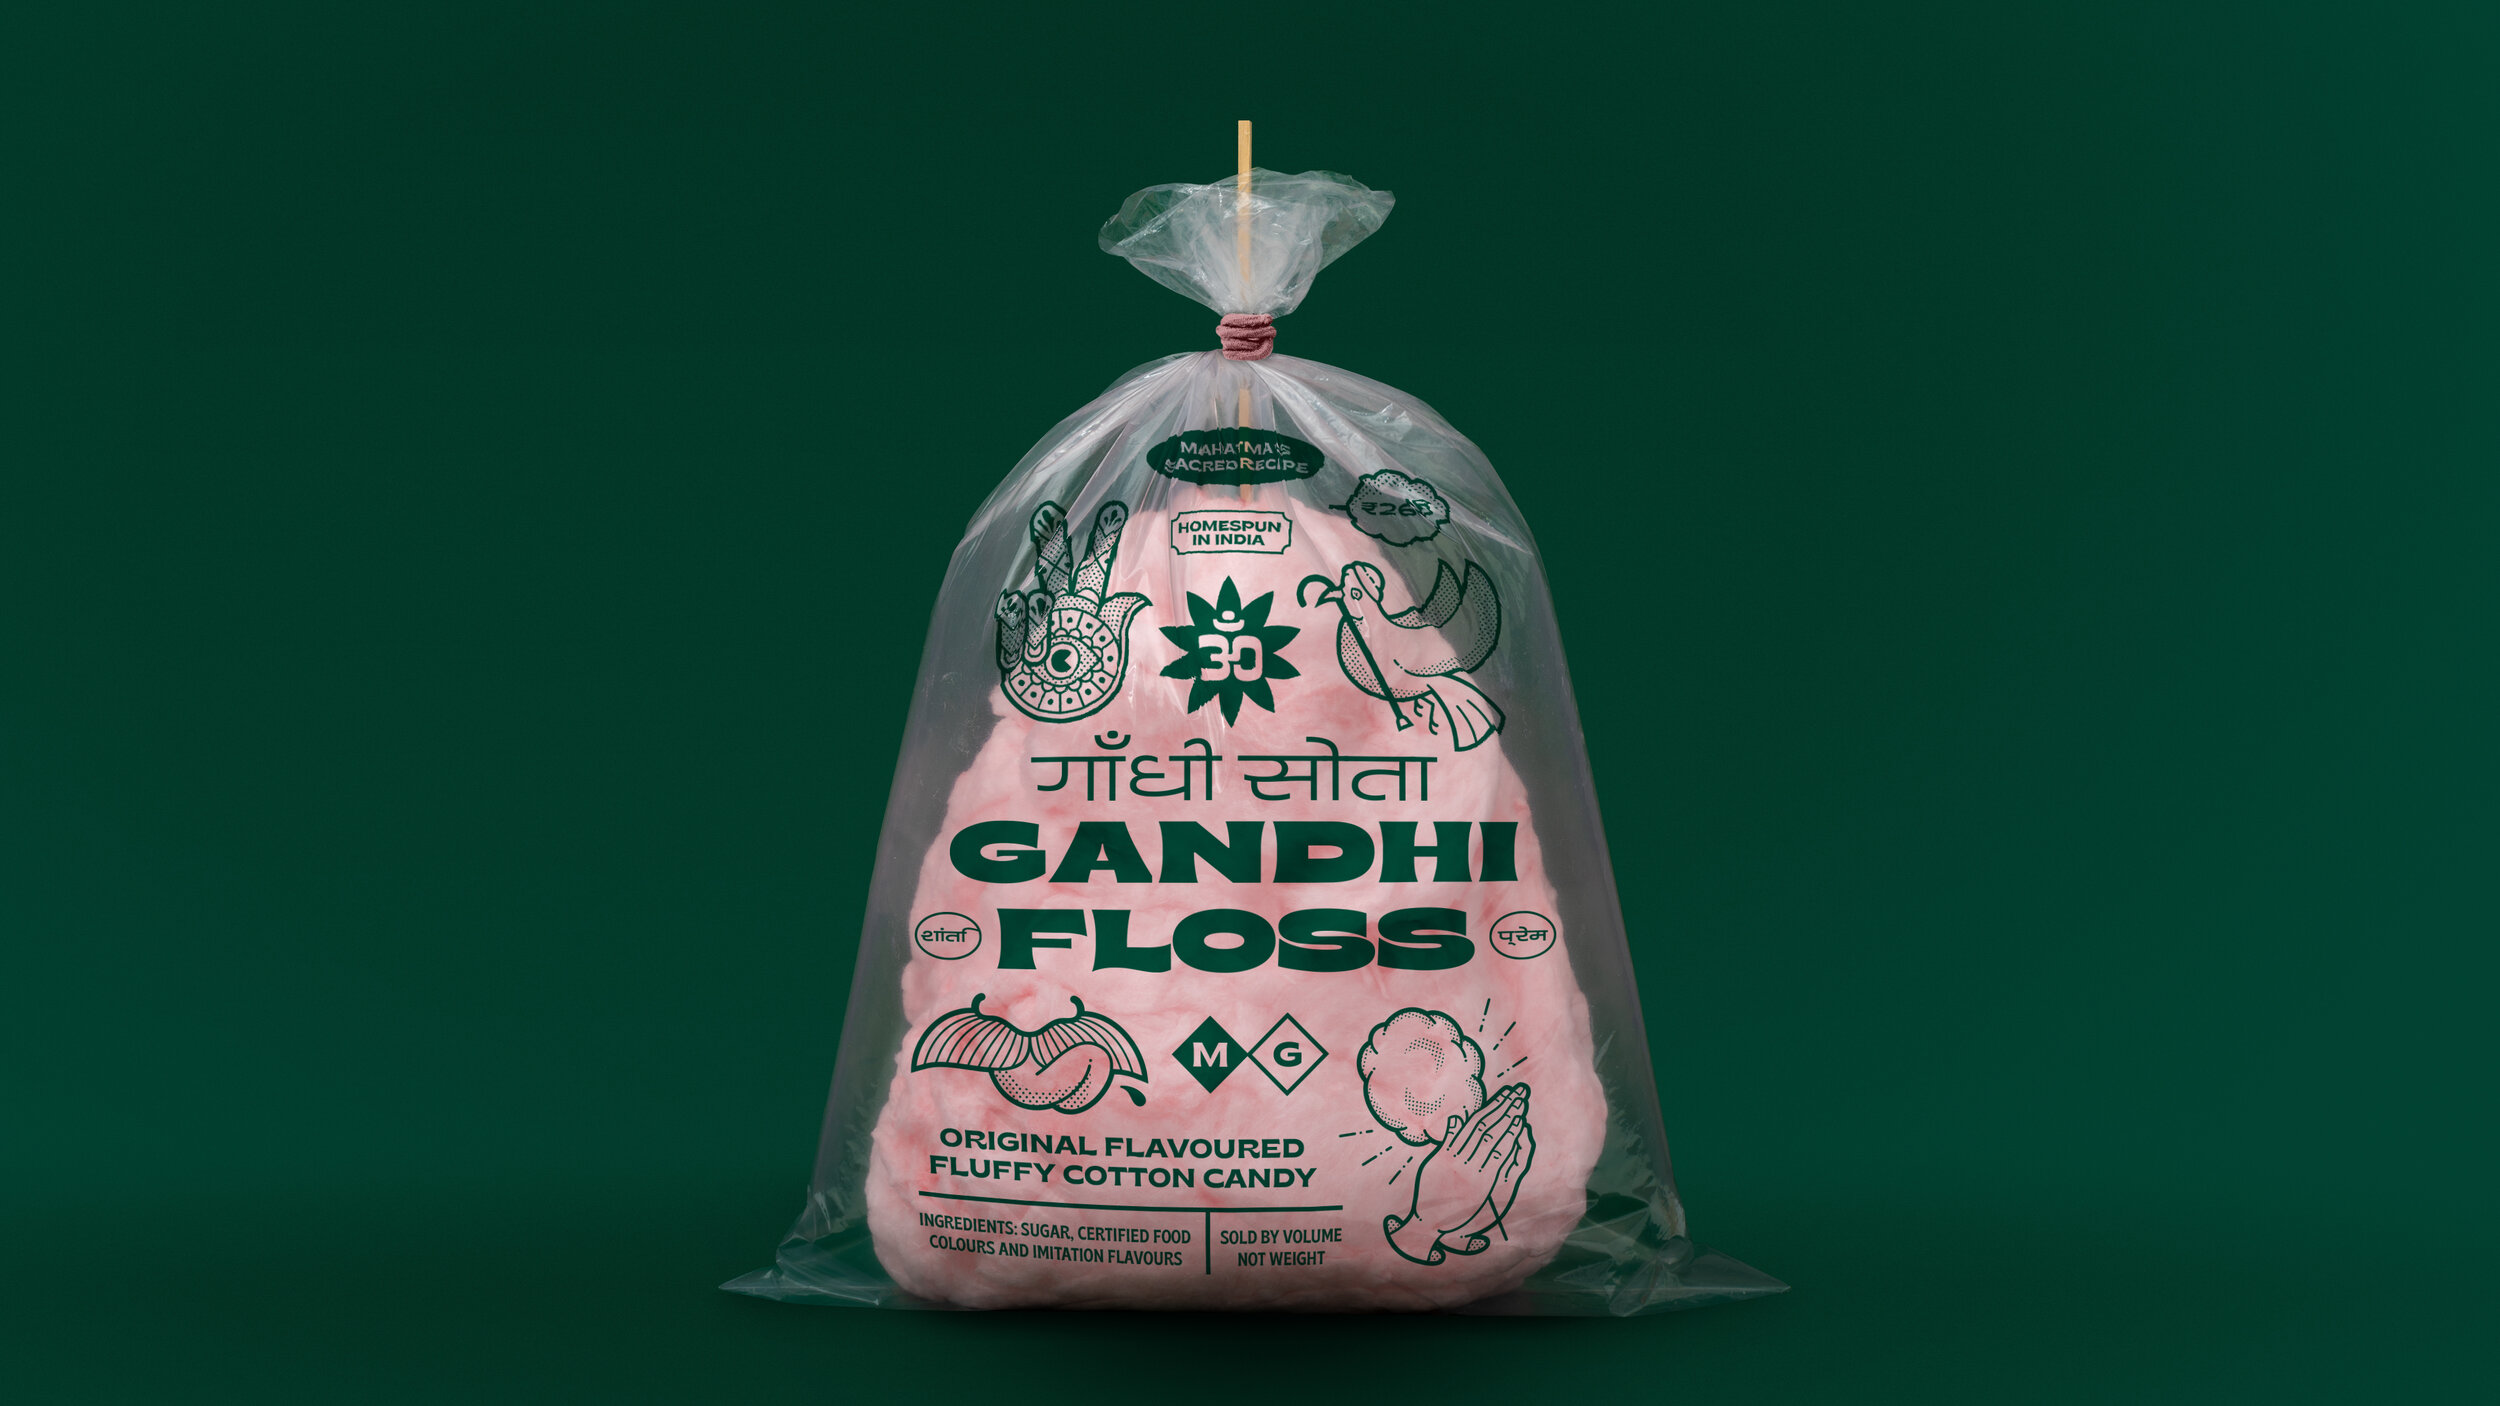 A Design Concept that Asks, If Gandhi Owned a Candy Floss Brand, What Would it Look Like?